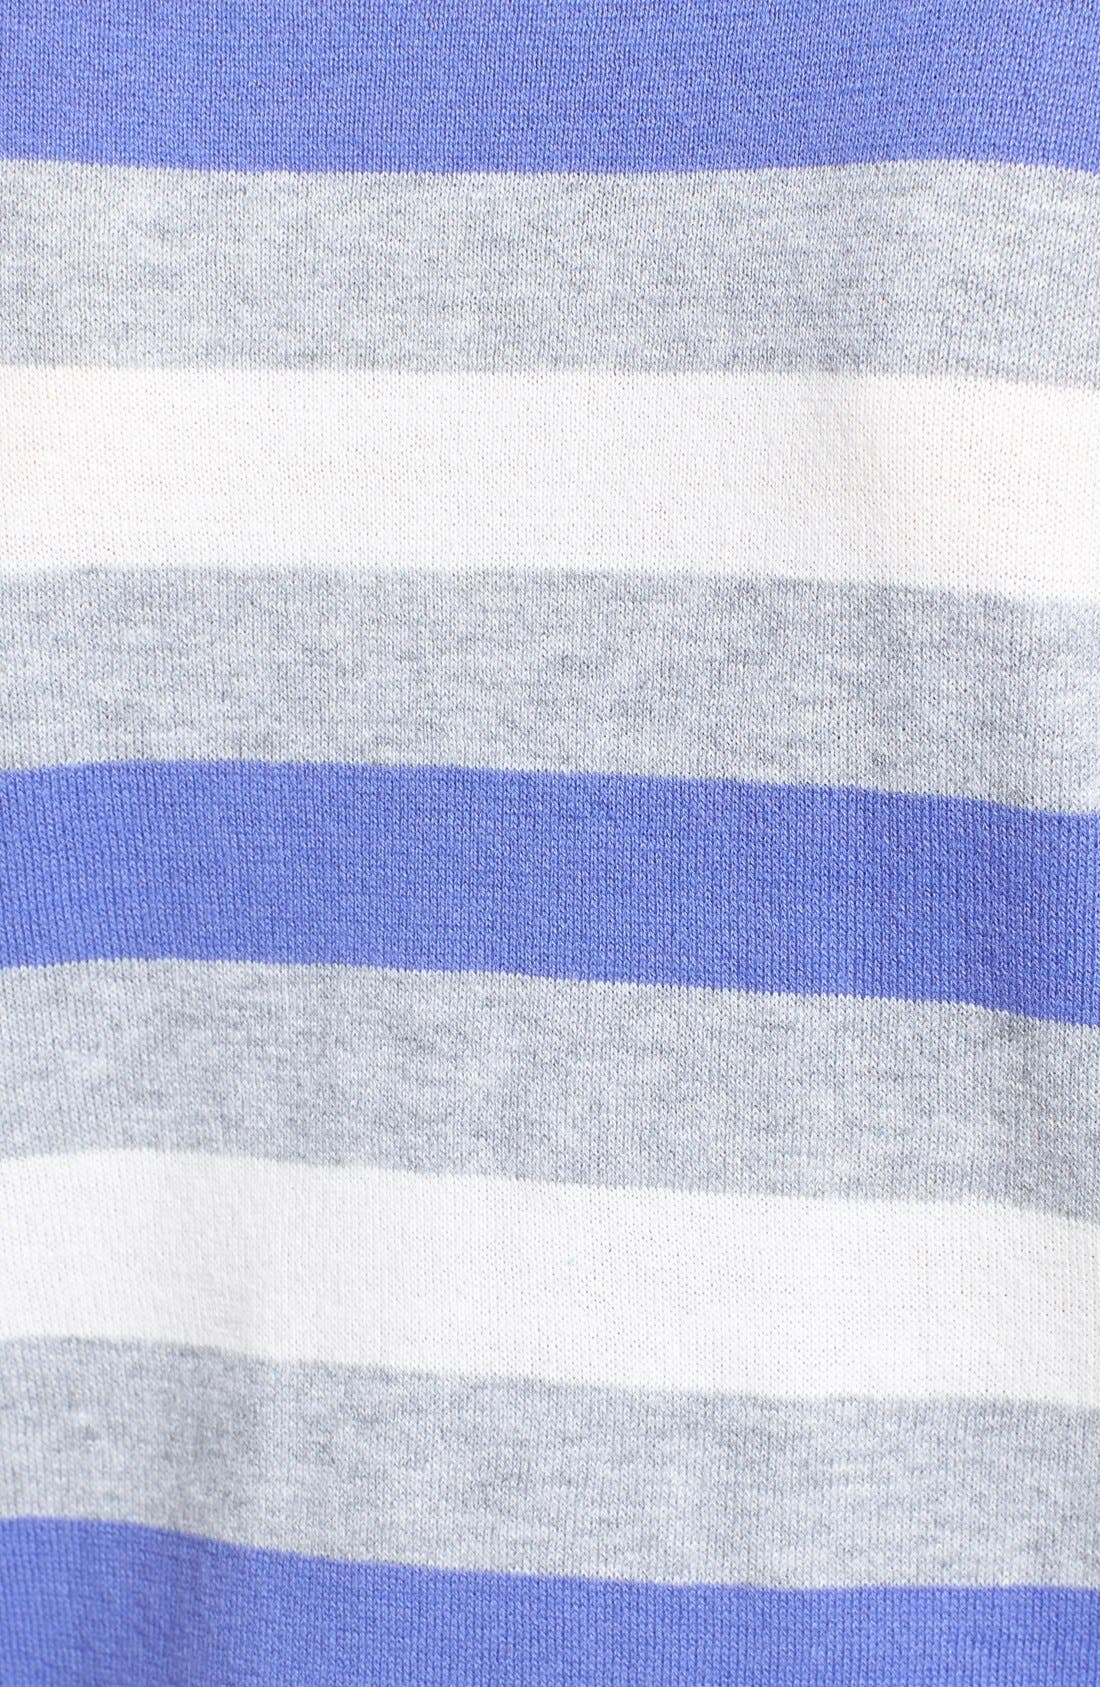 Alternate Image 3  - Vince Camuto Stripe Crewneck Sweater (Petite)